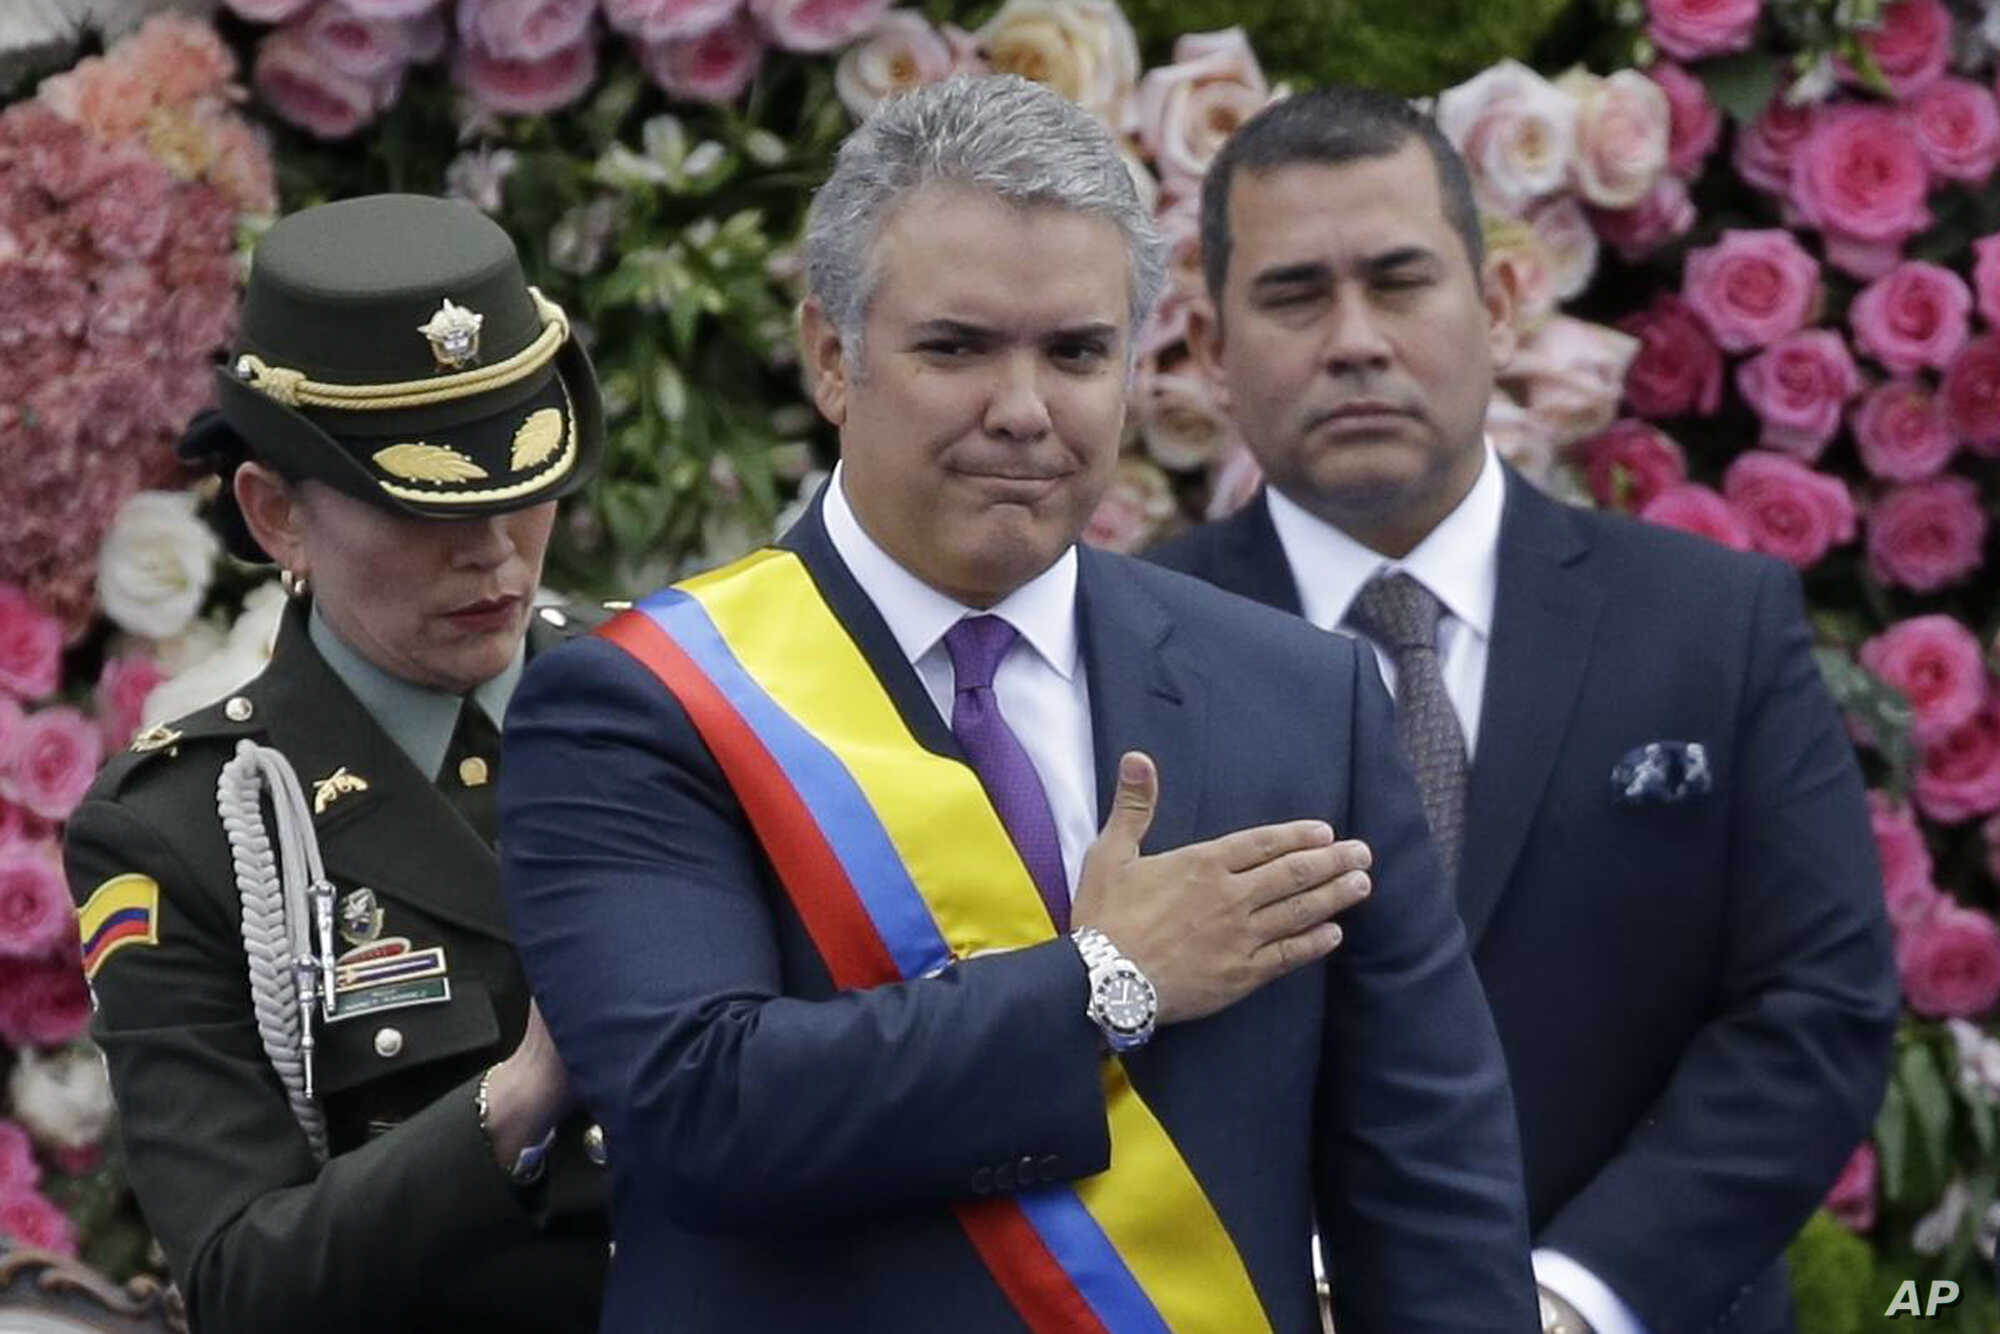 Colombia's President Ivan Duque gestures after receiving the presidential sash during his inauguration ceremony in Bogota, Colombia, Aug. 7, 2018.